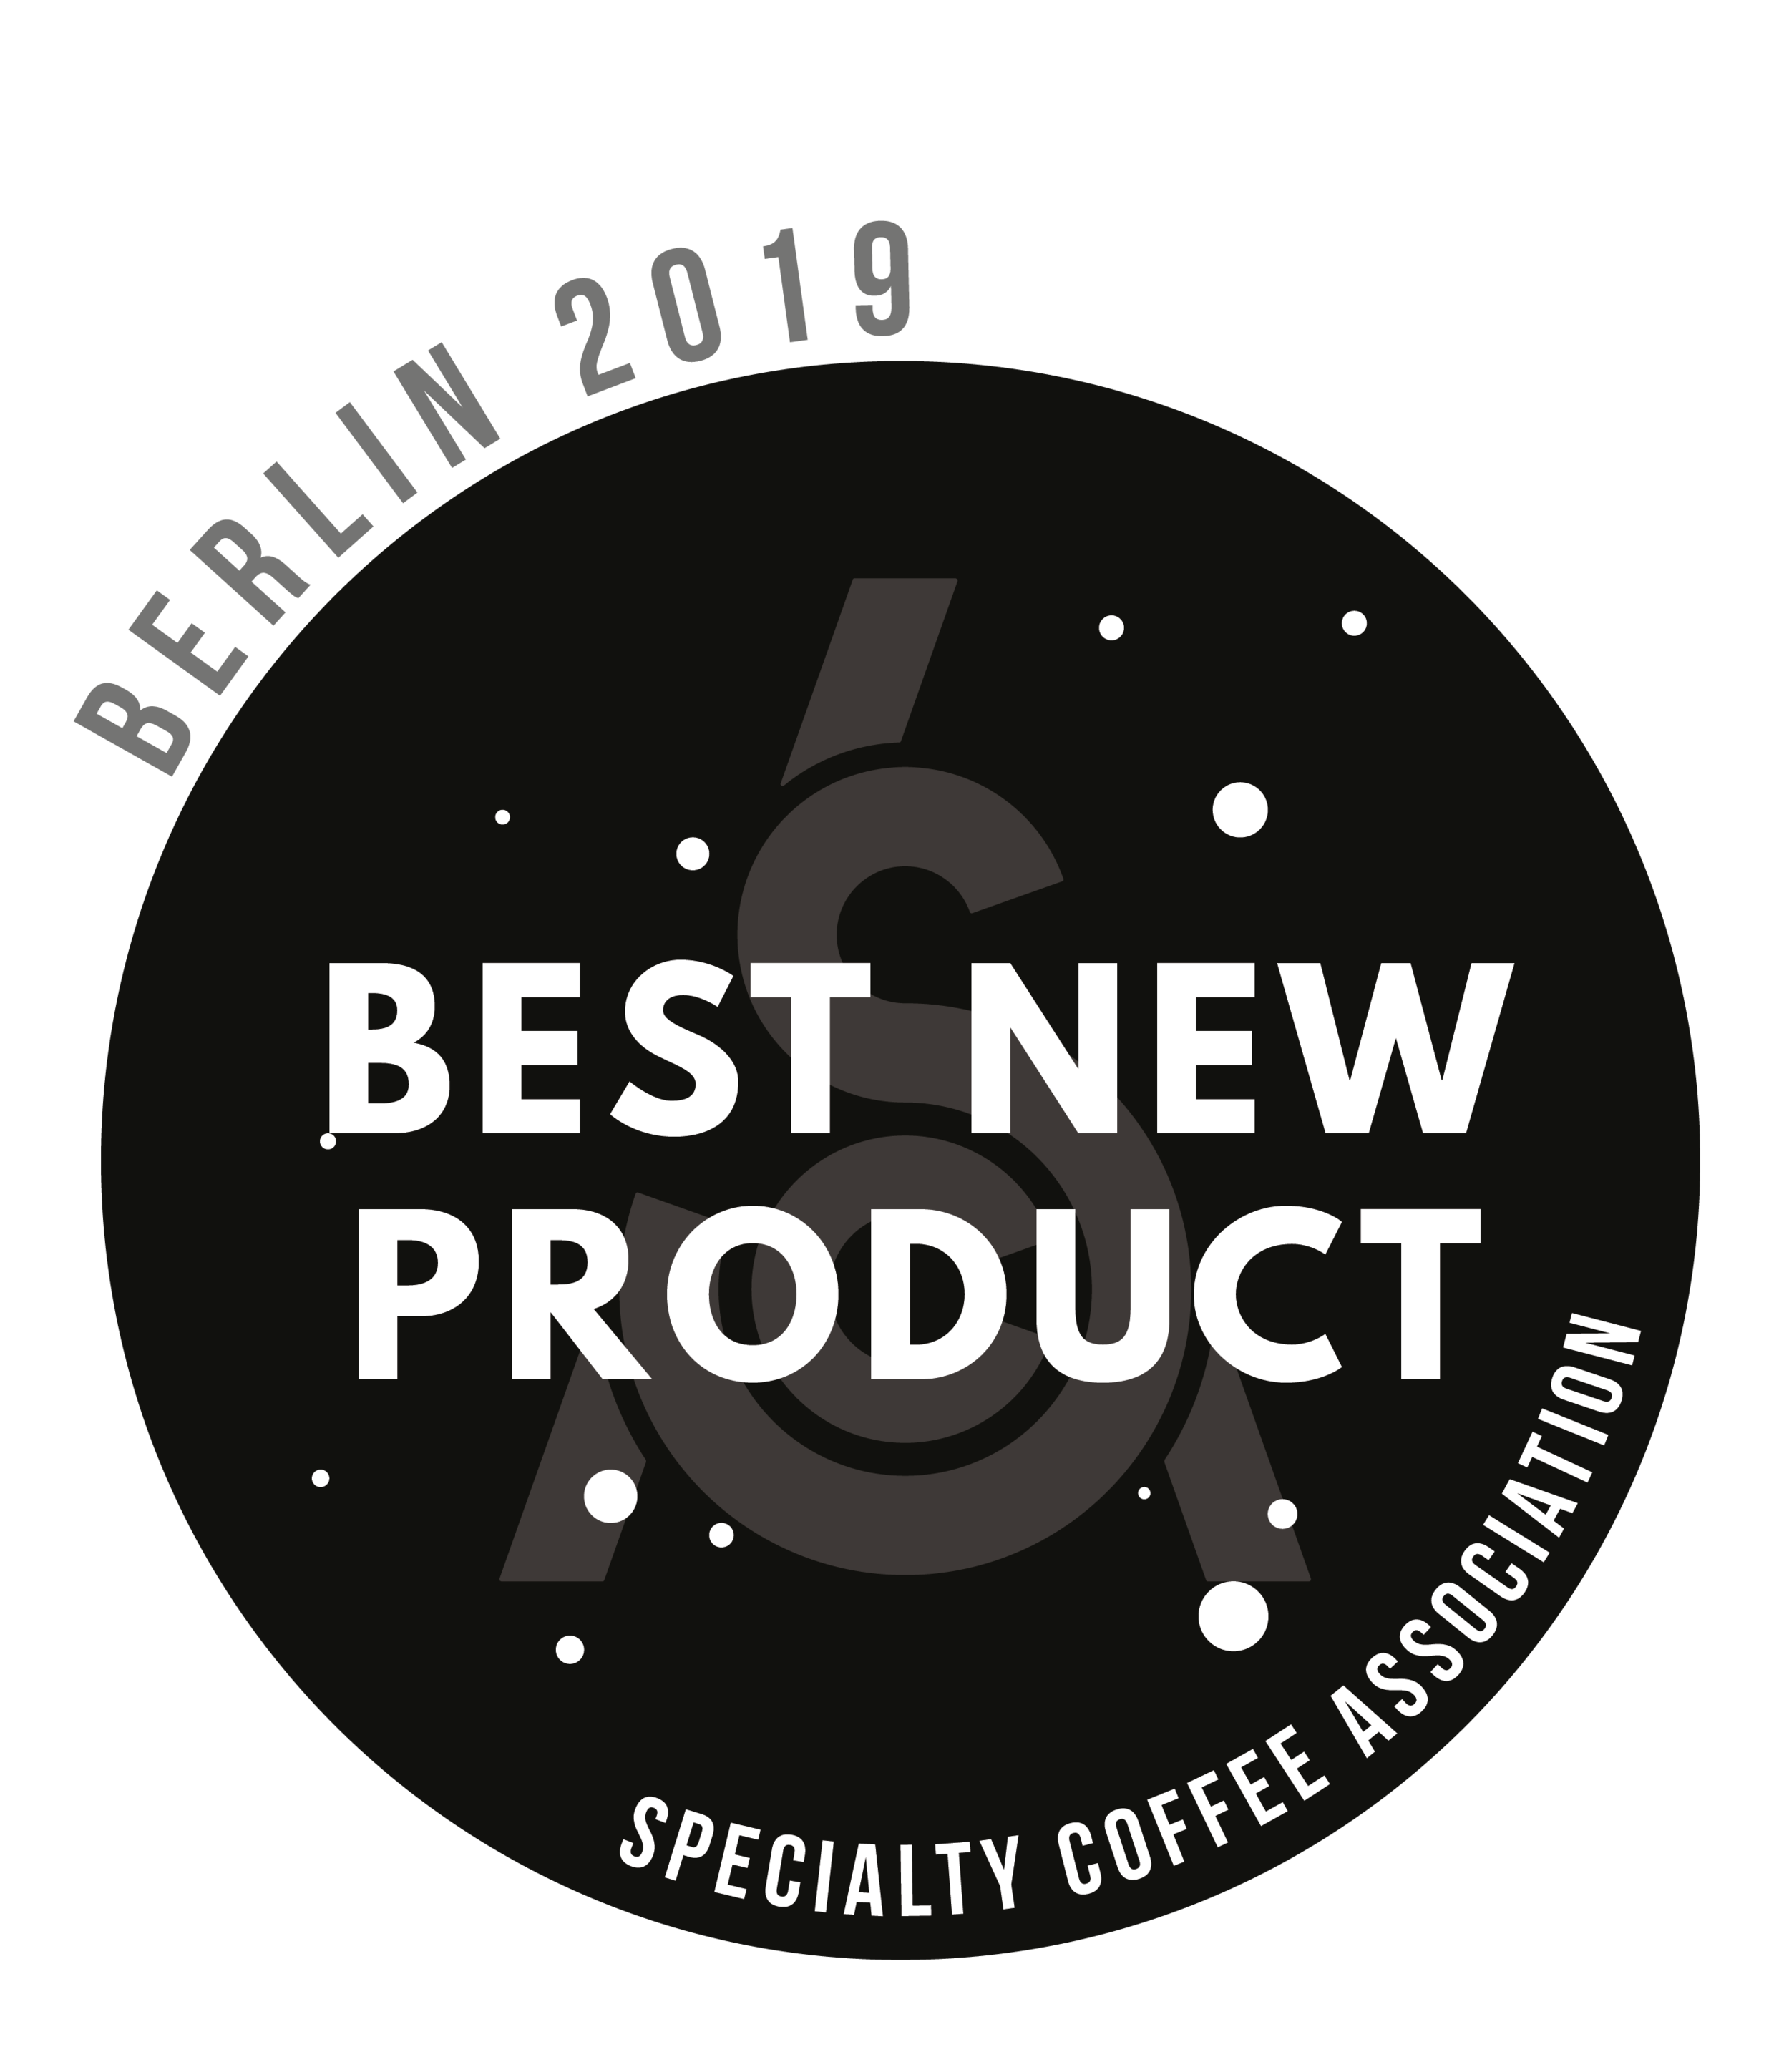 Best New Product Competition — World of Coffee